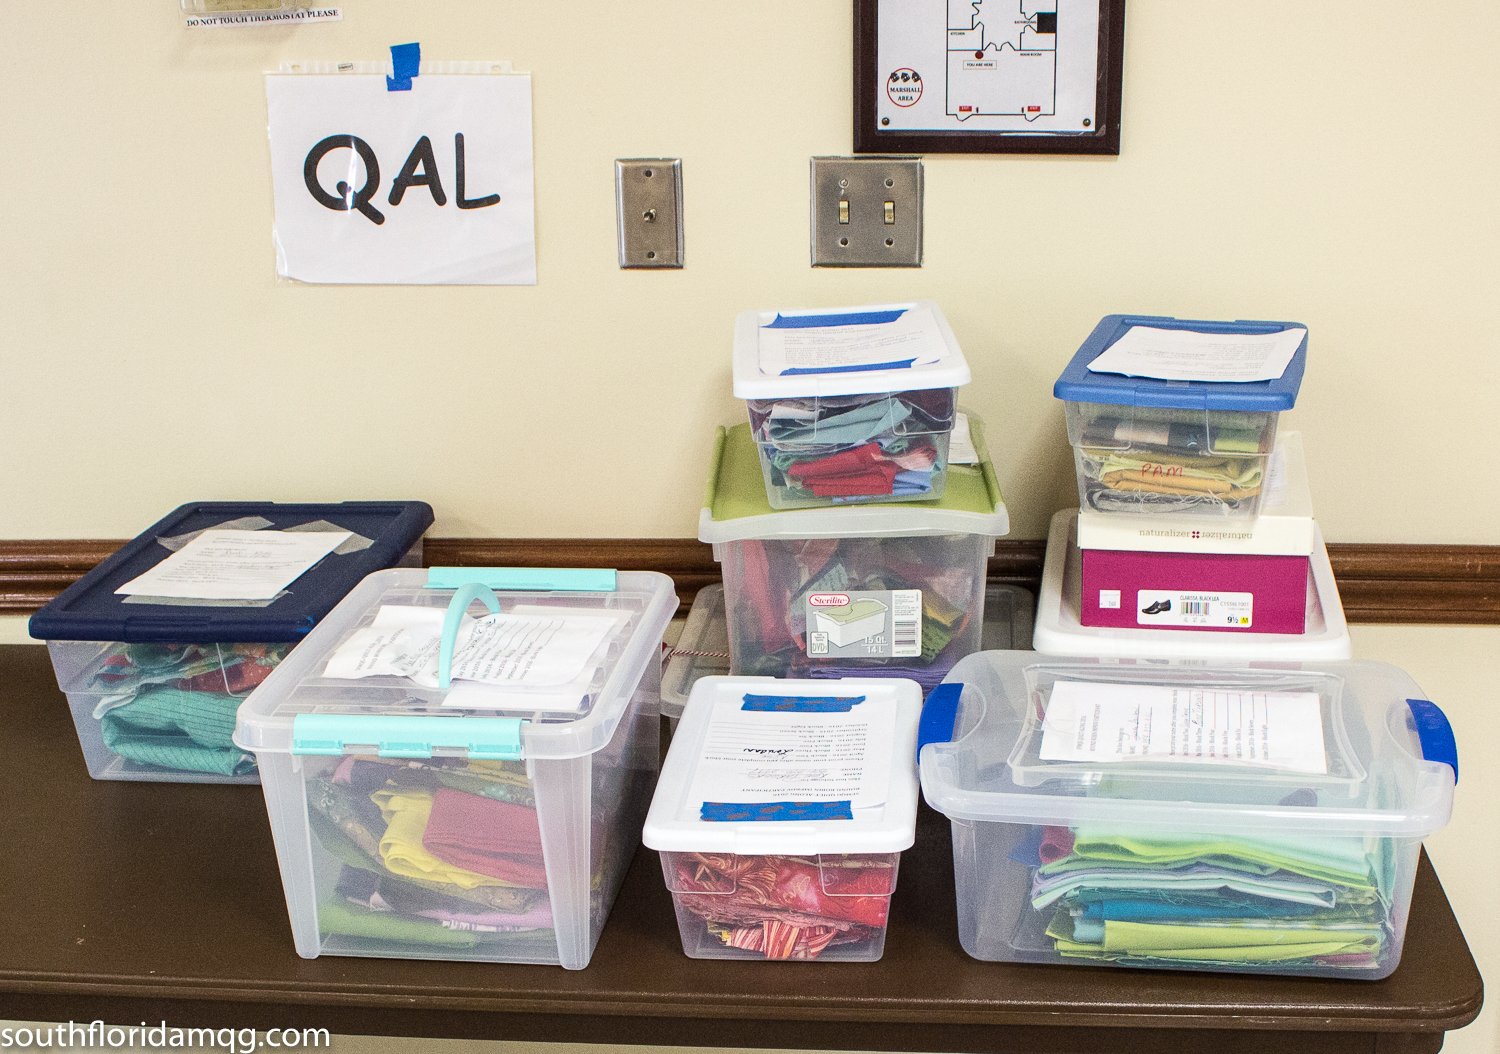 QAL boxes ready for exchanging